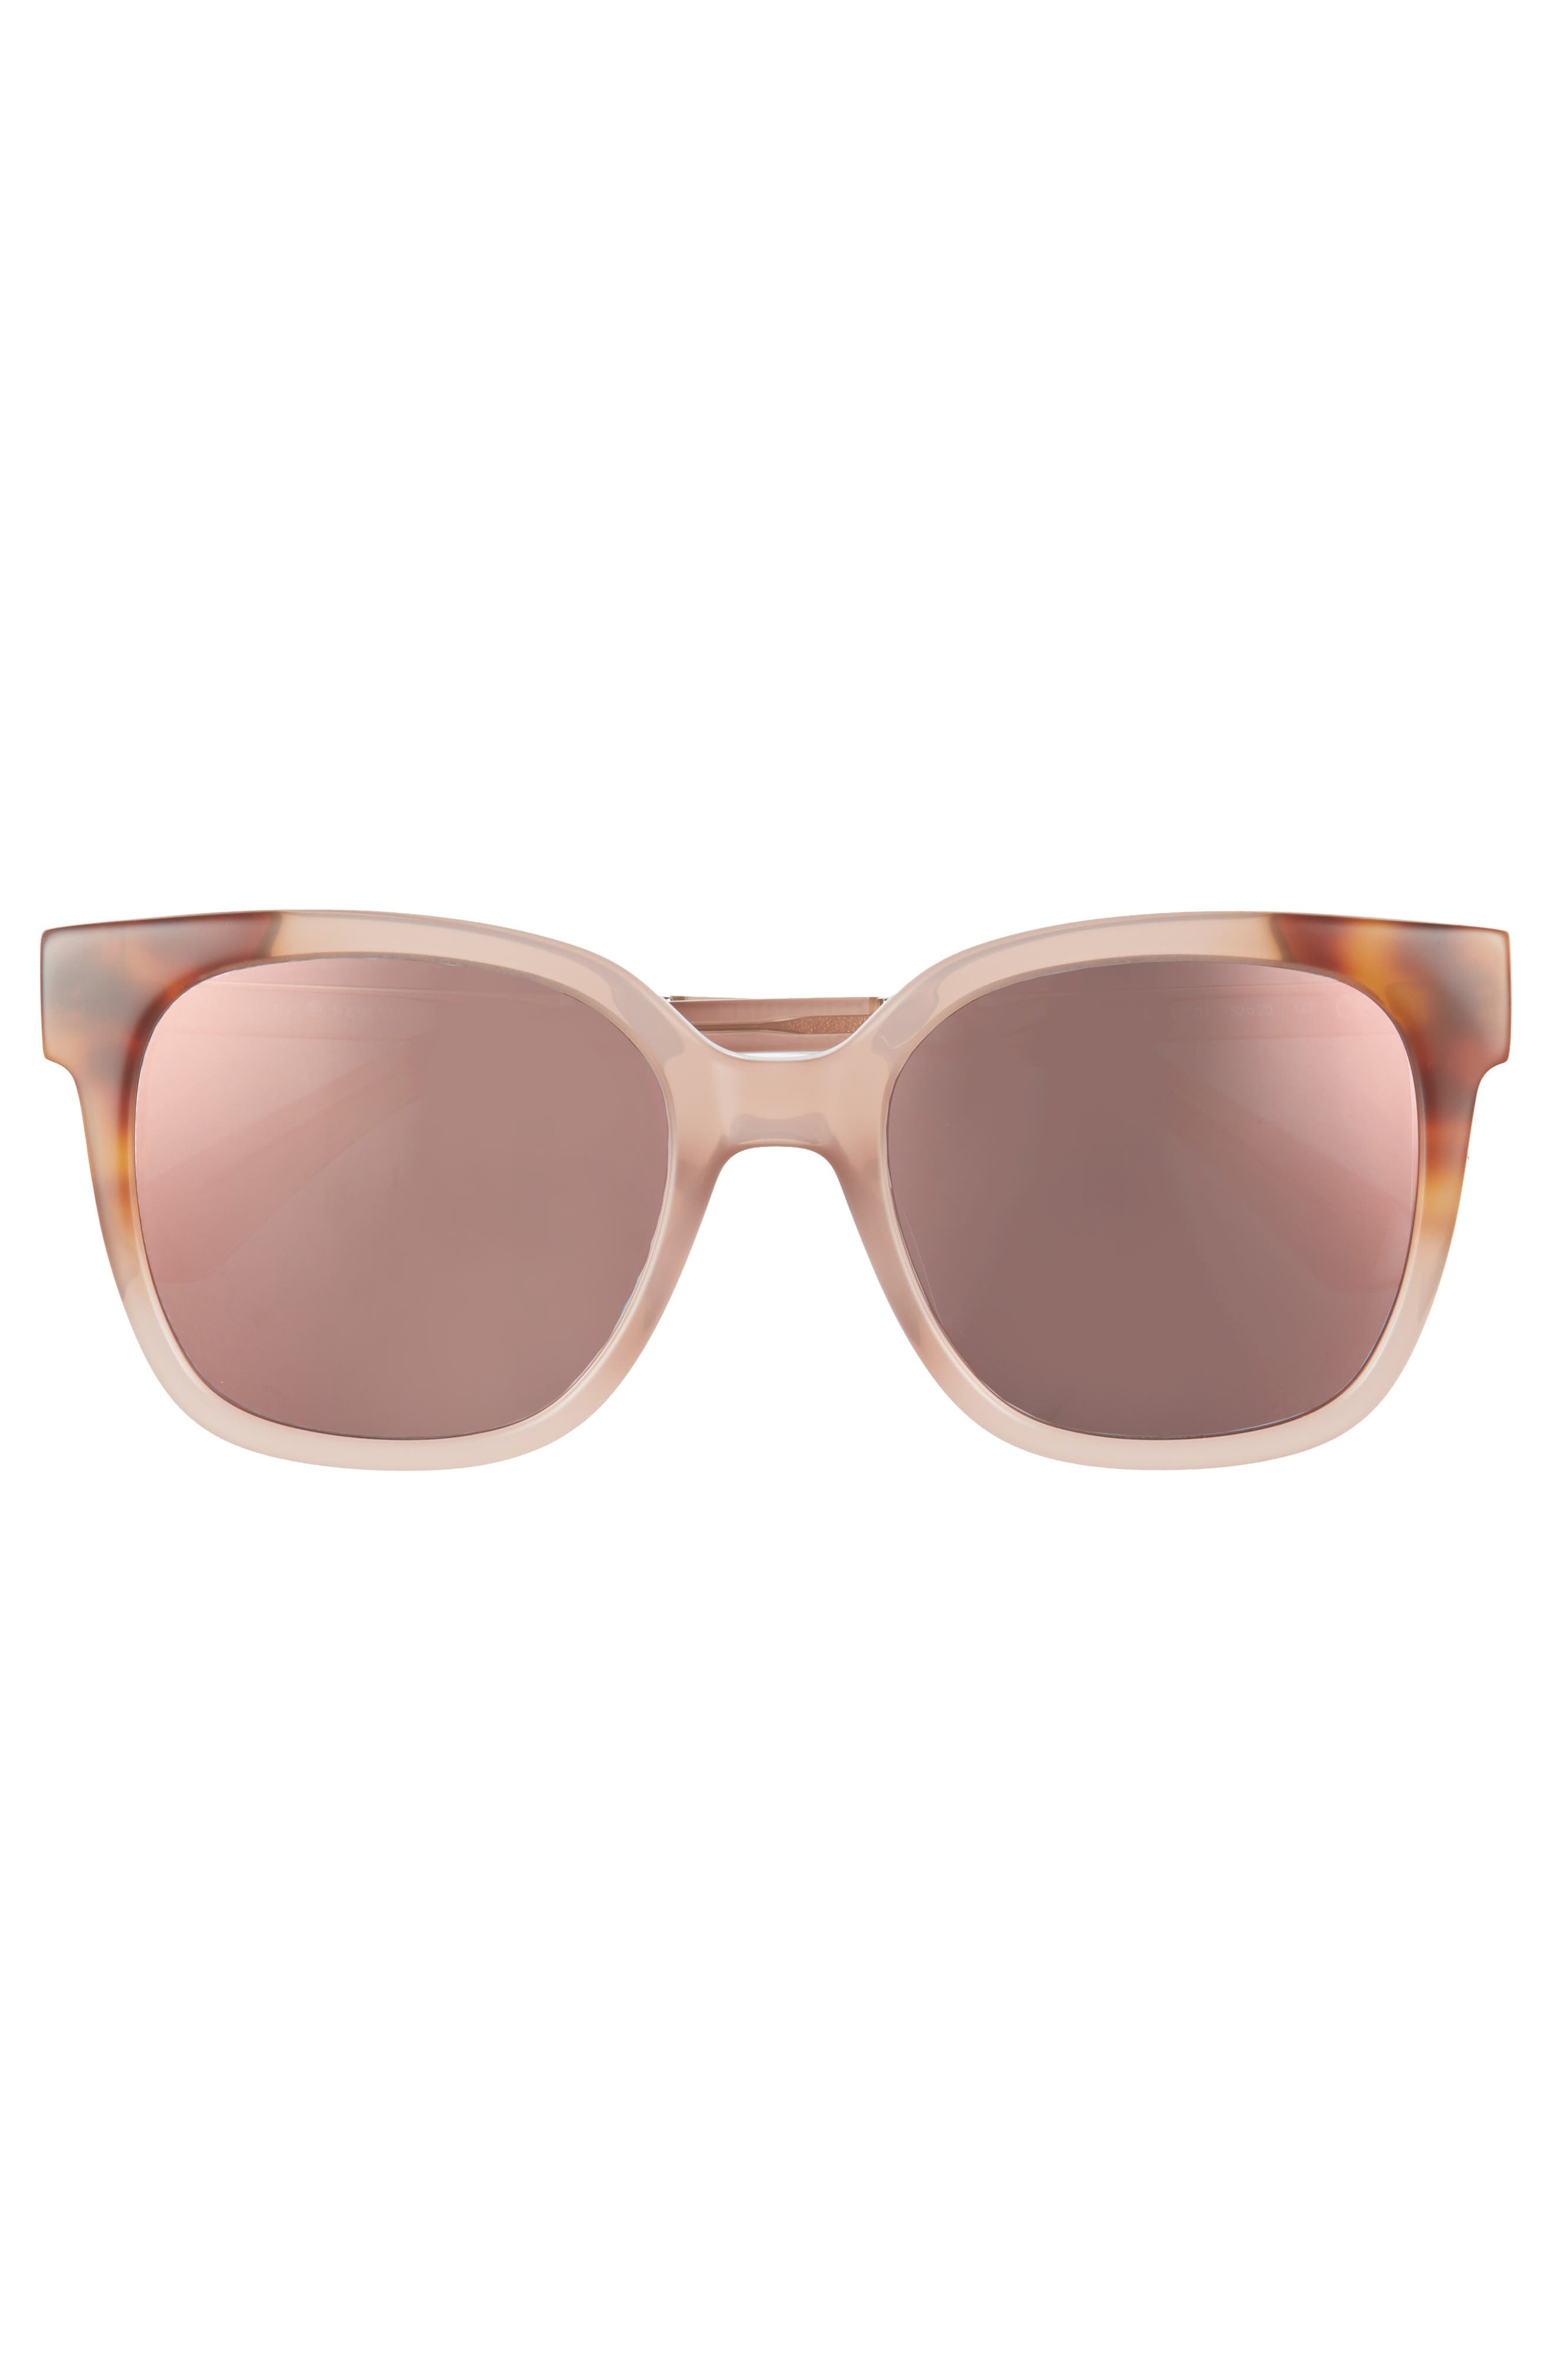 caelyns basic 52mm sunglasses,                             Alternate thumbnail 3, color,                             Nude/ Havana/ Honey